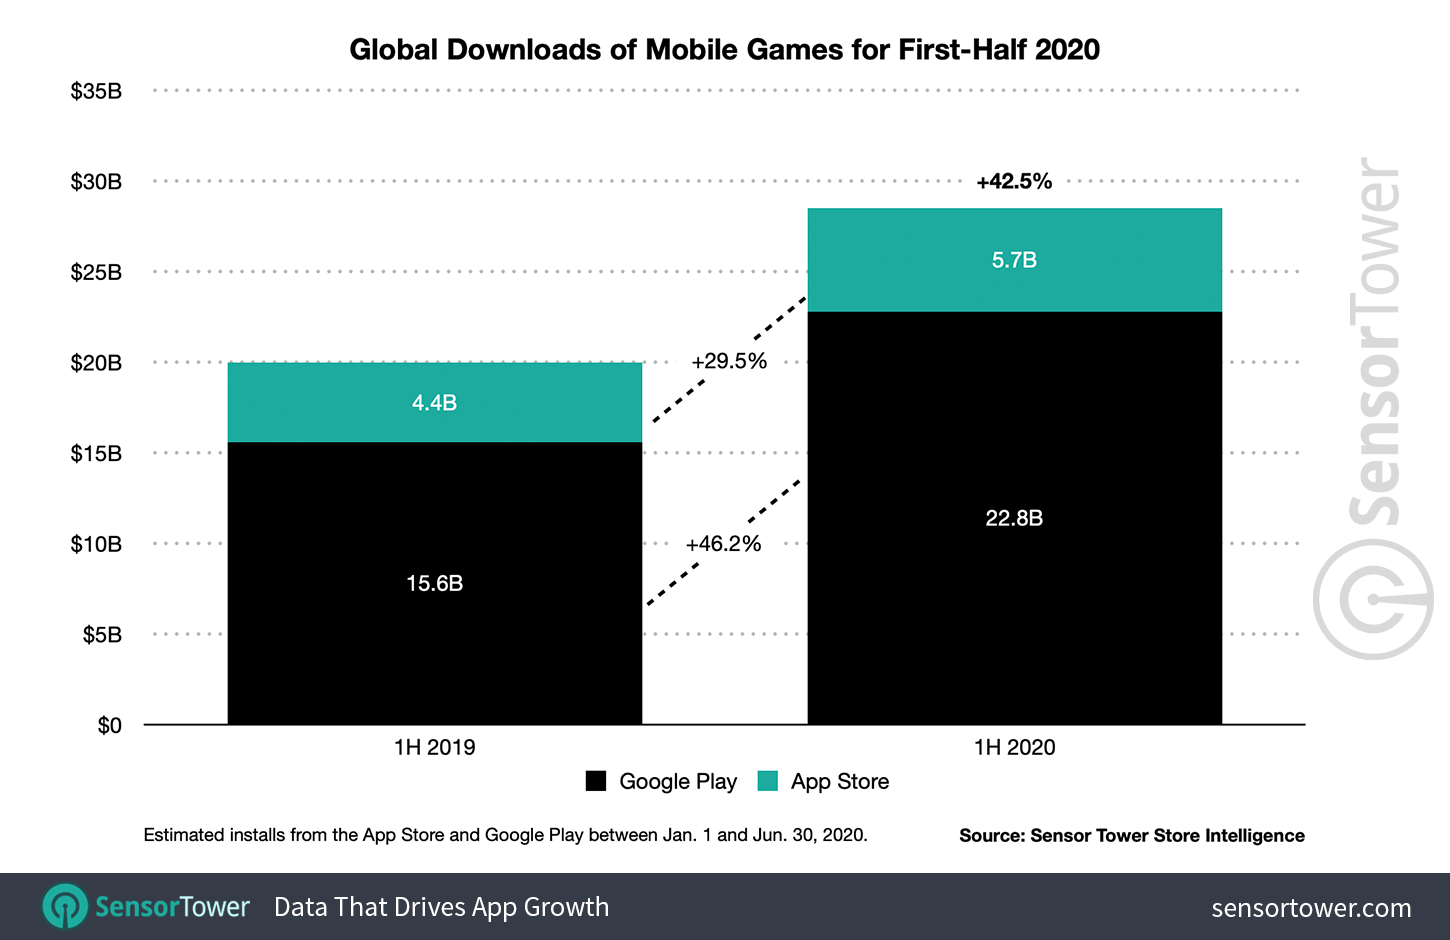 1H 2020 Mobile Game Downloads